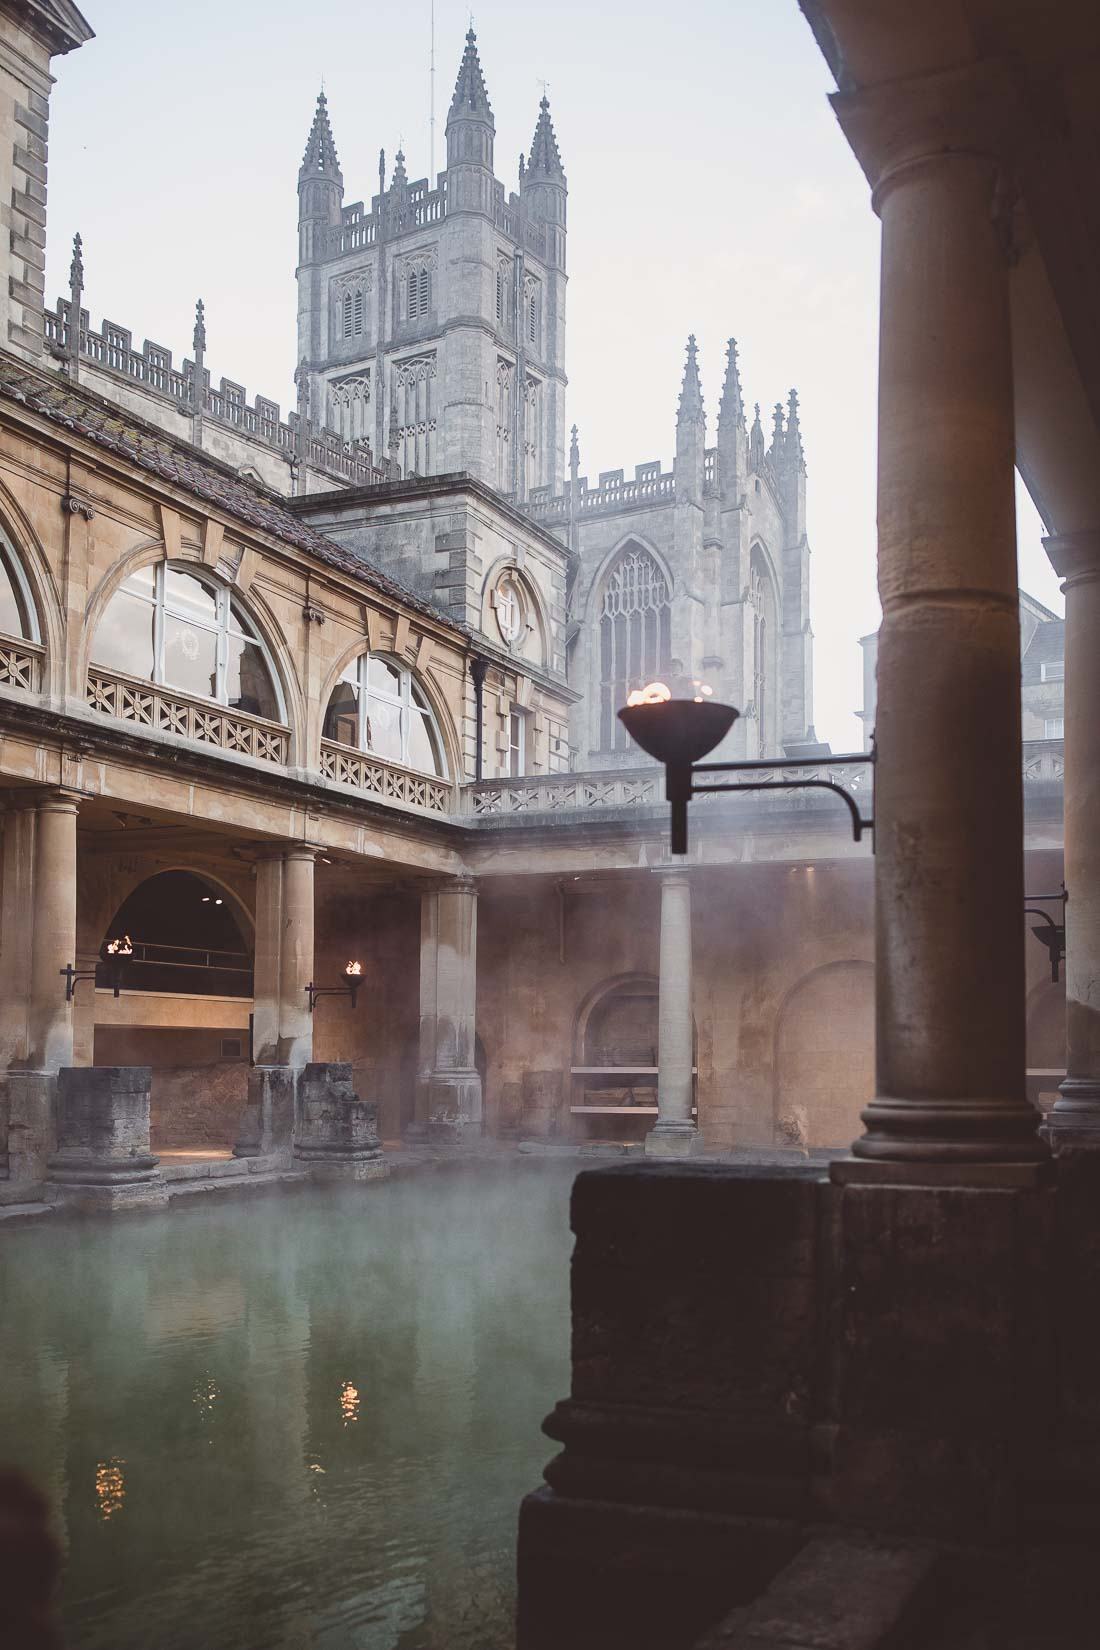 Sunrise Ceremony at The Roman Baths